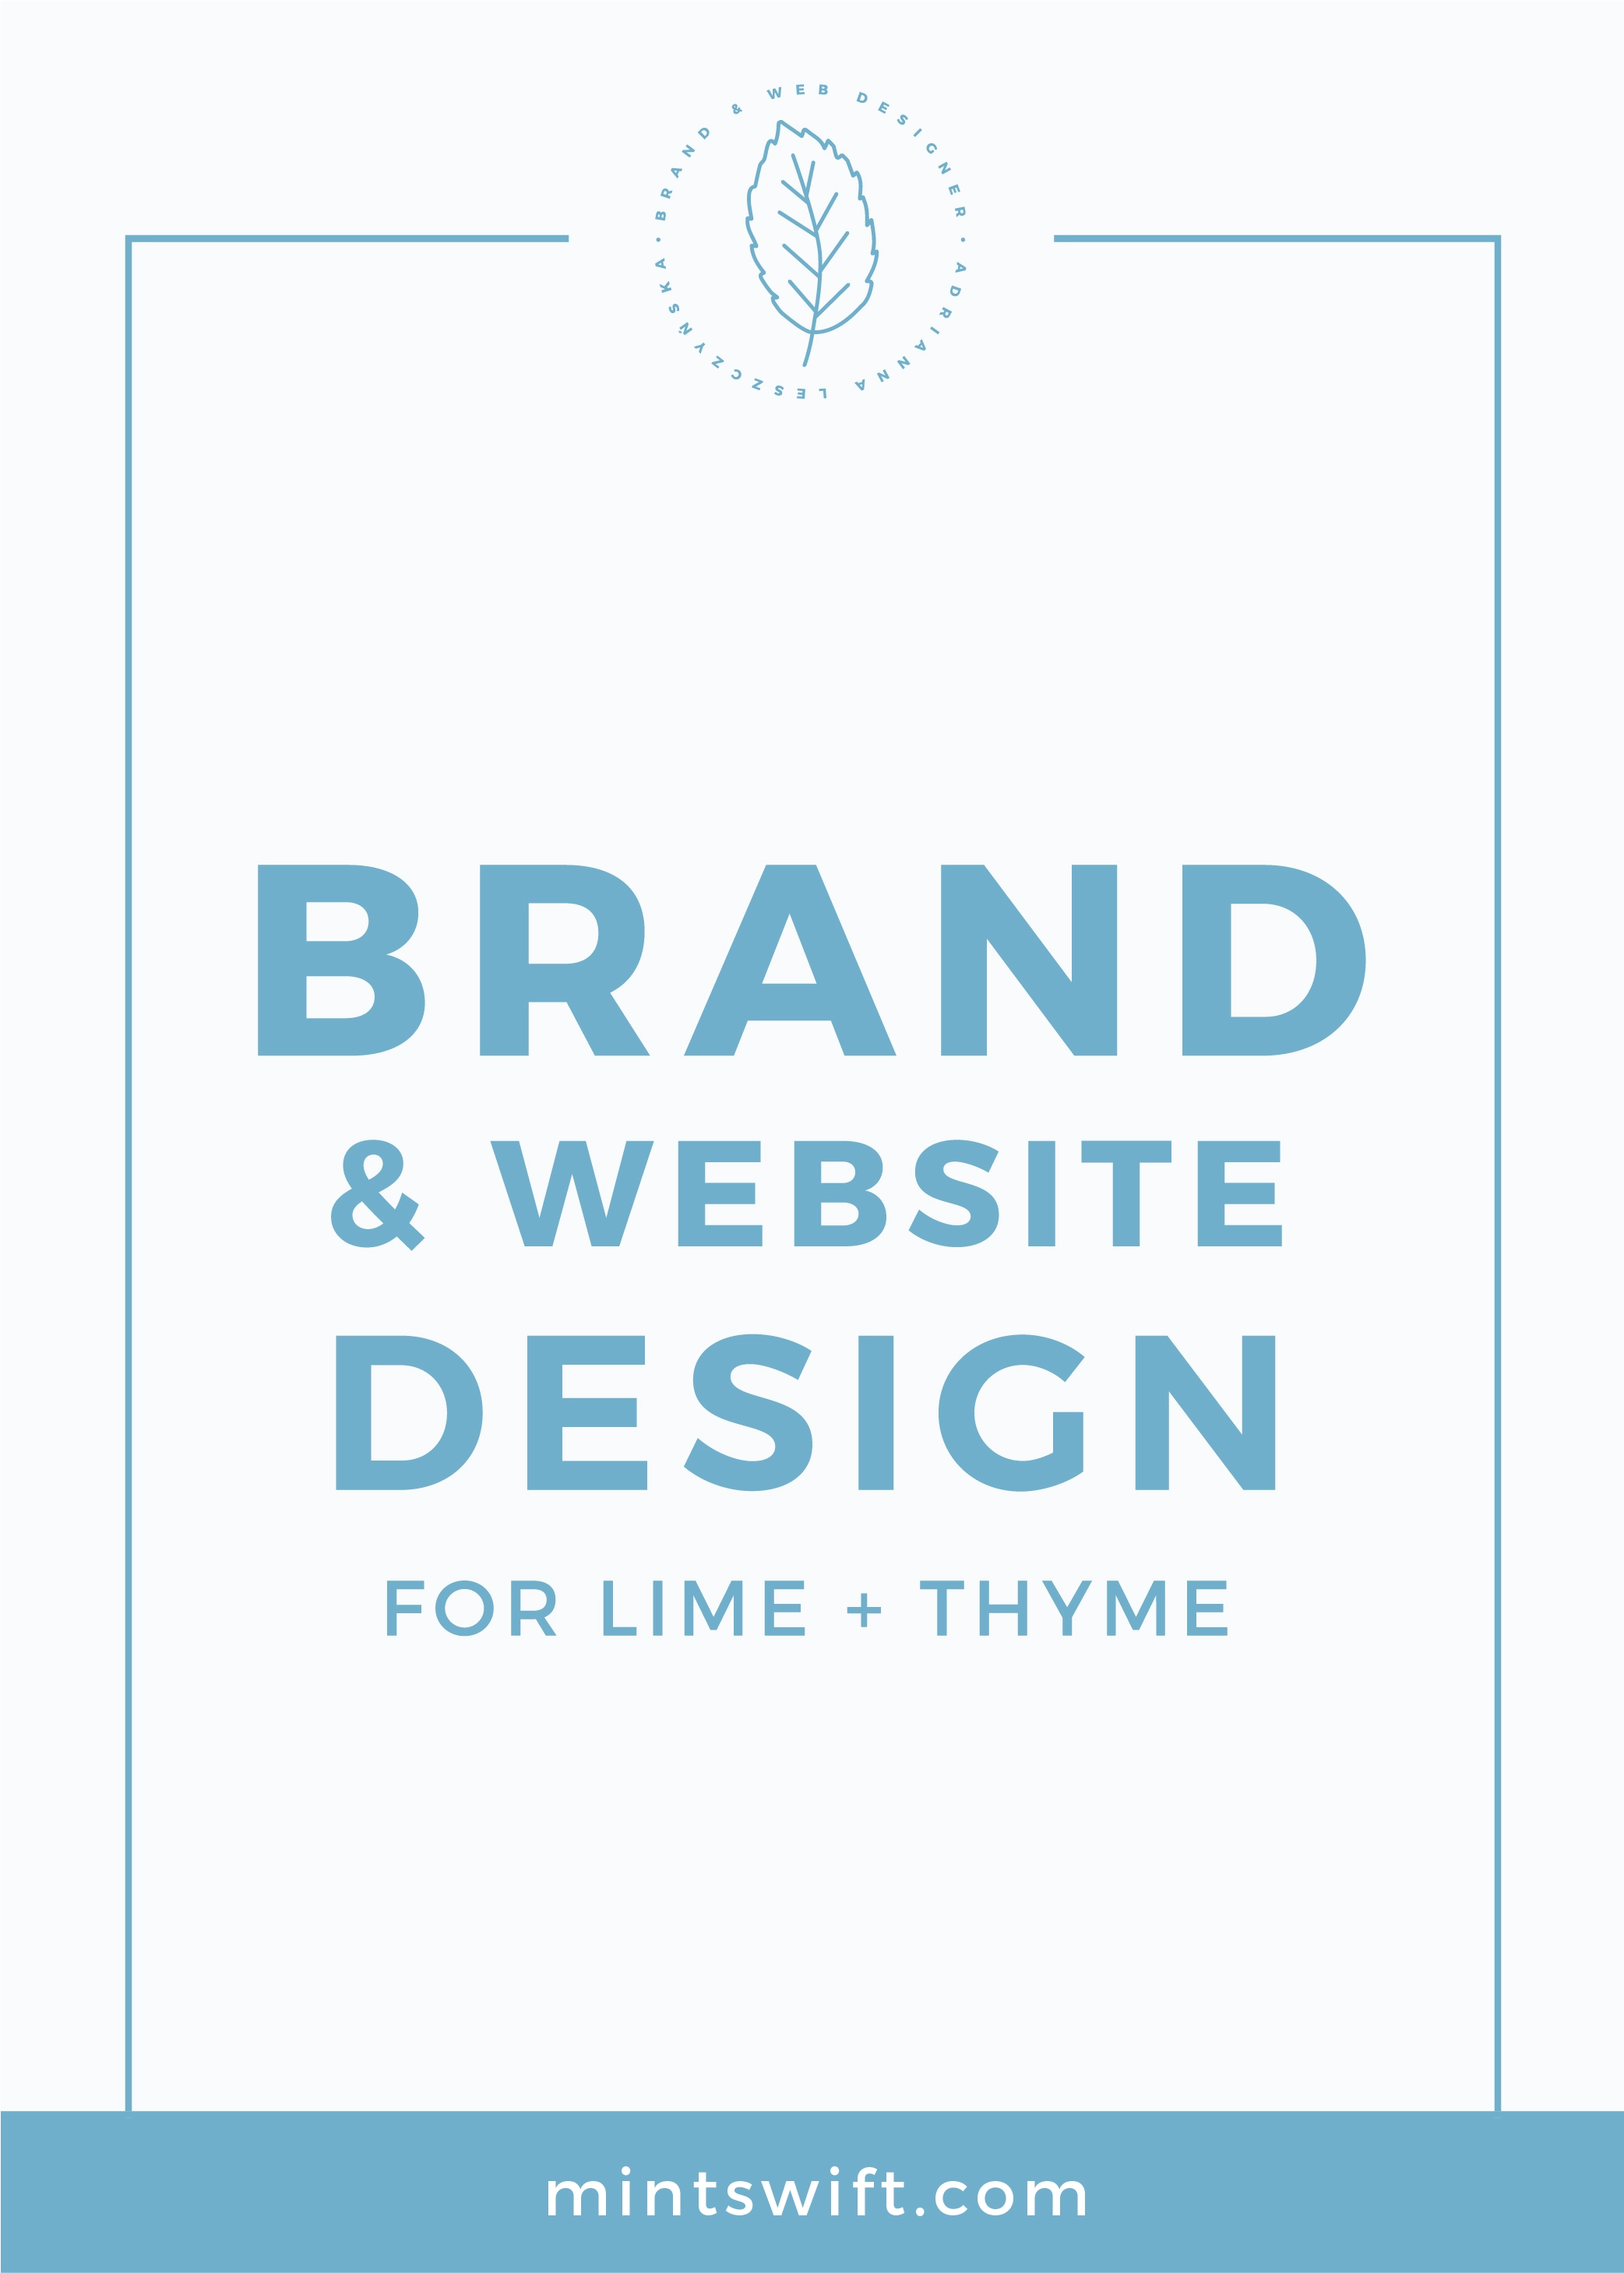 Brand & Website Design for Lime + Thyme MintSwift